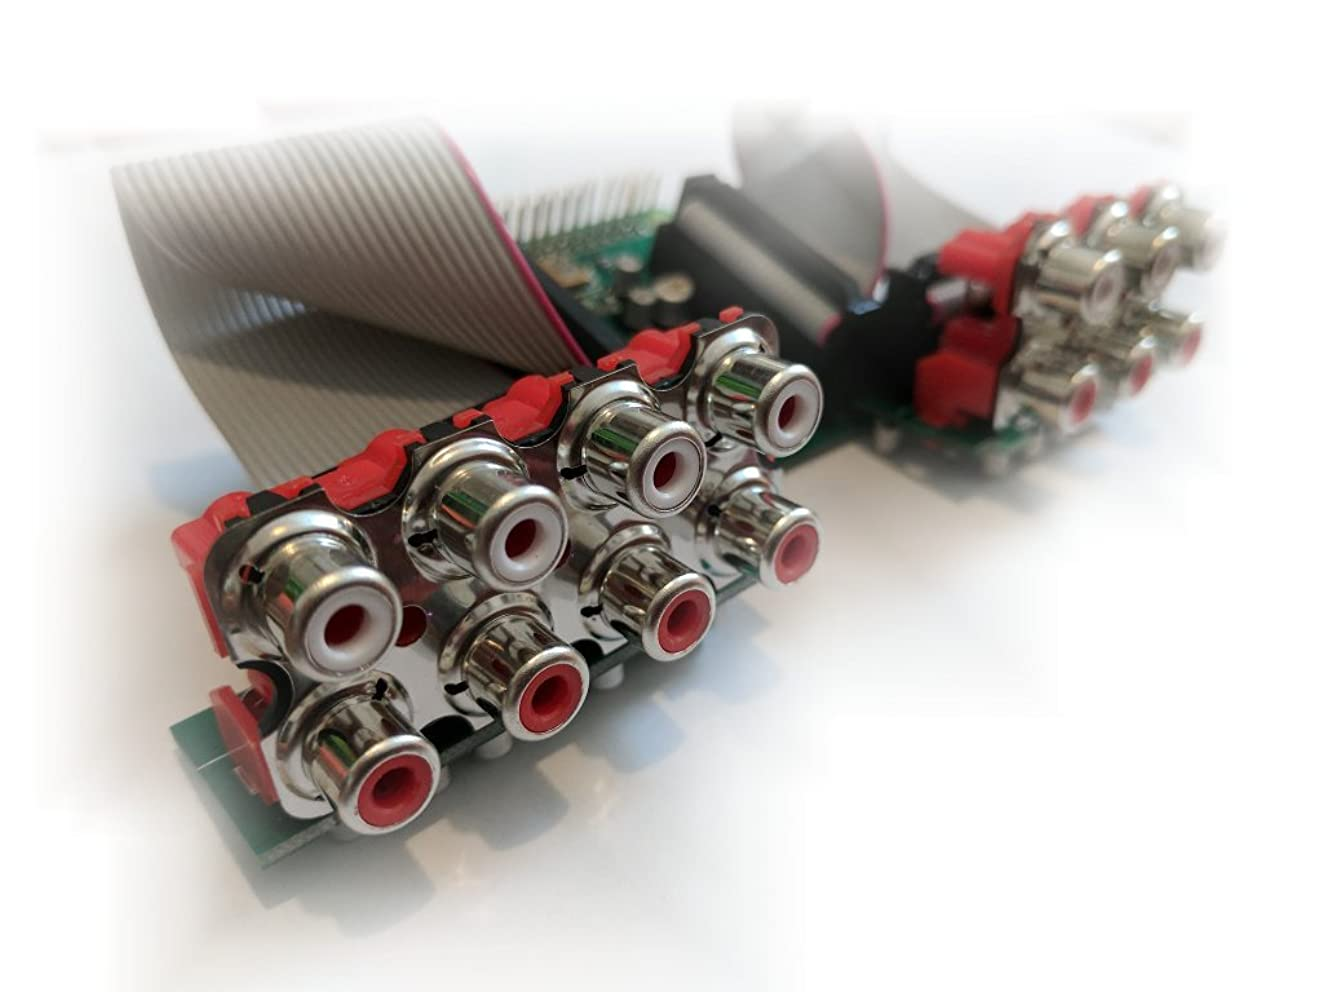 Octo 8 channel sound card for the Raspberry Pi